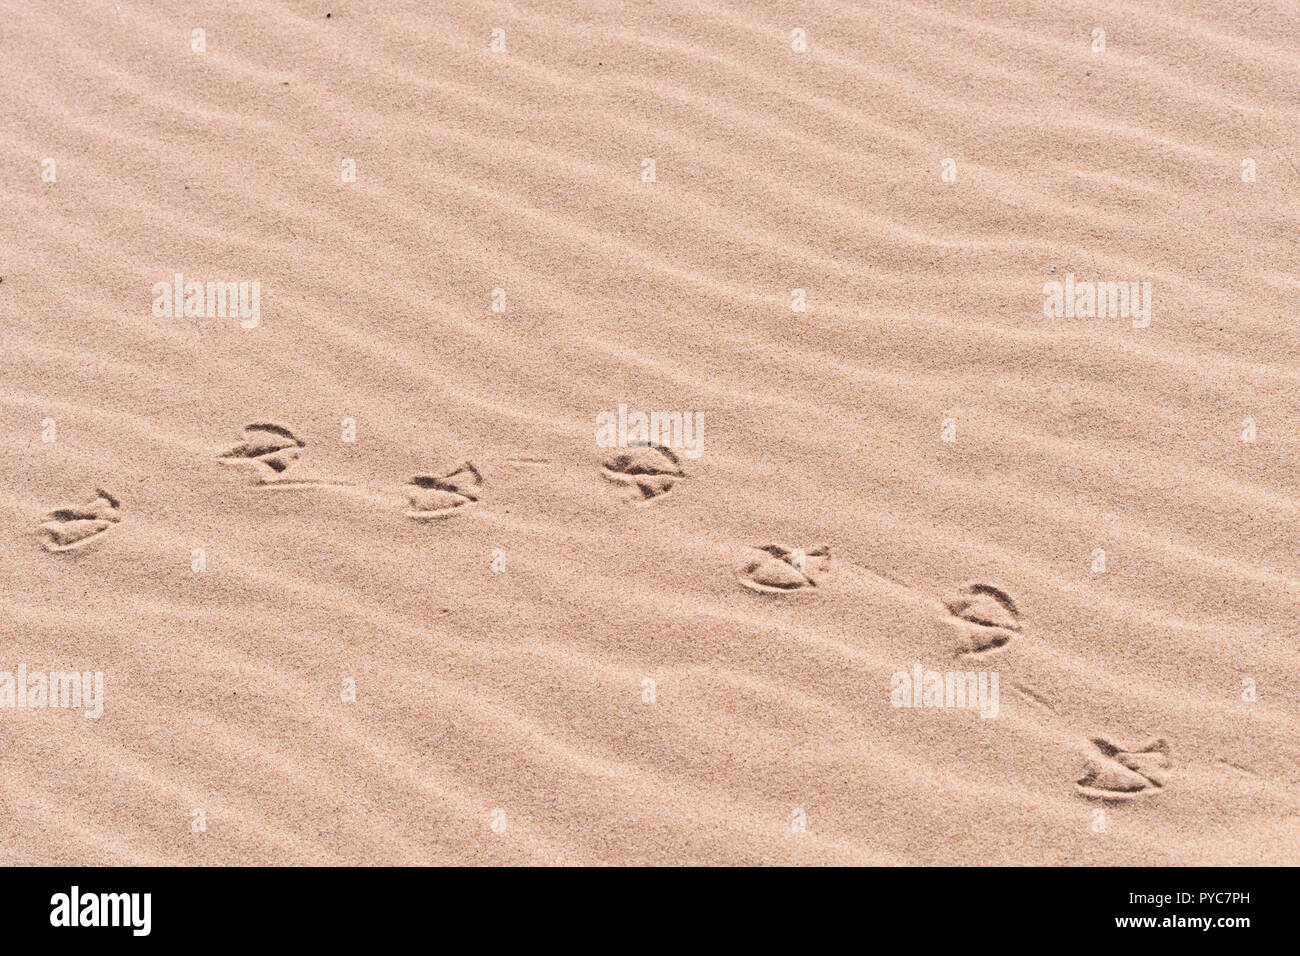 Palmate (webbed) Vogelarten Track (Footprint) in Sand am Strand. Stockbild